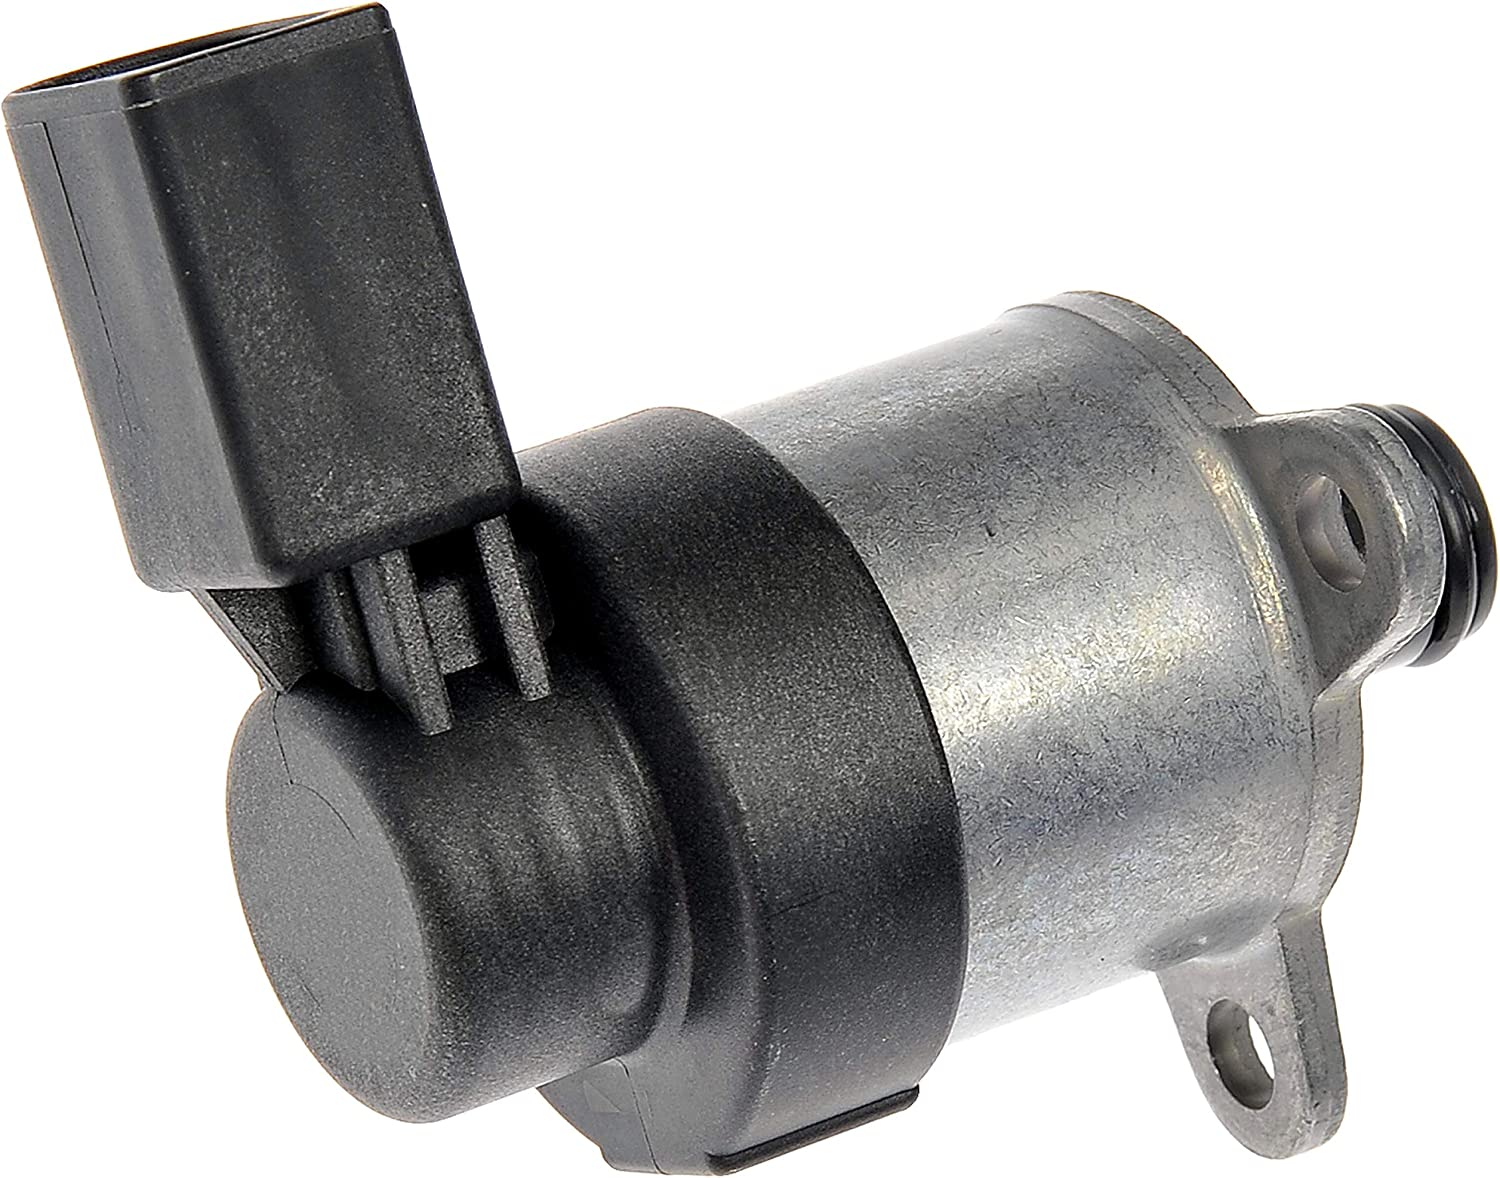 Dorman Now on sale 904-579 Fuel Injection Pressure Select Regulator for Max 52% OFF Merc